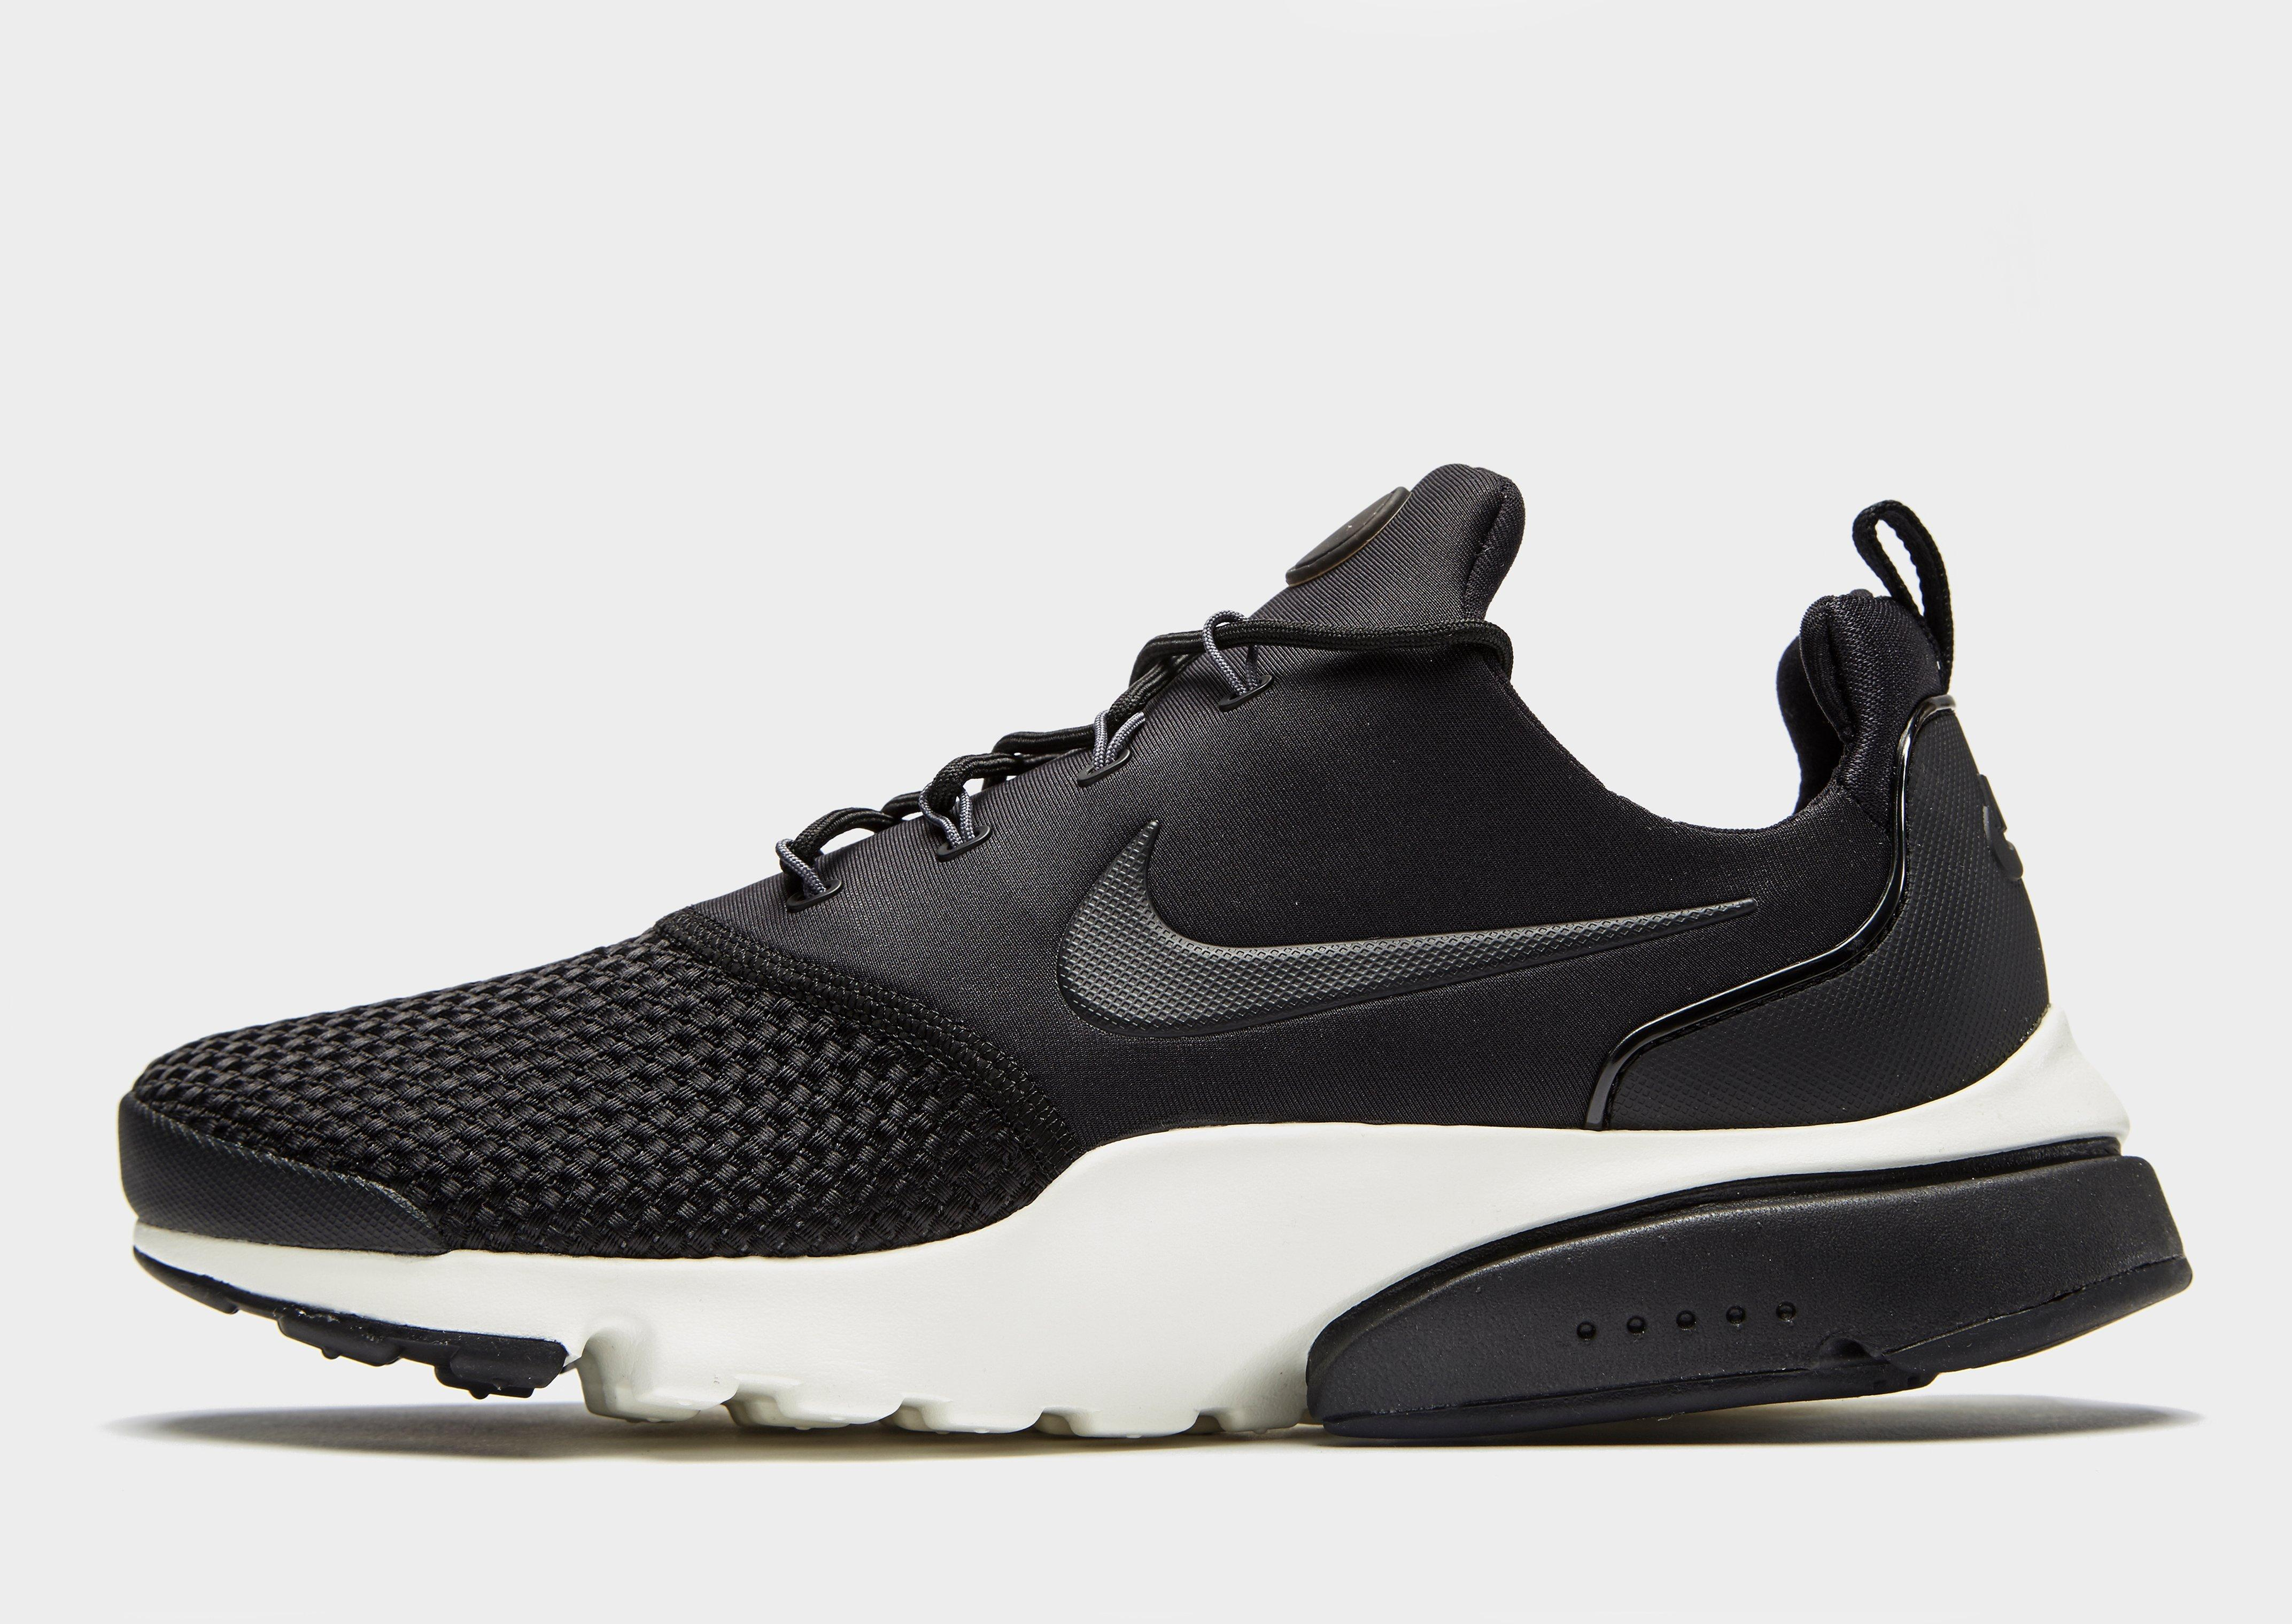 ... good lyst nike air presto fly in black for men d7b32 d106b 2ca6abbcd